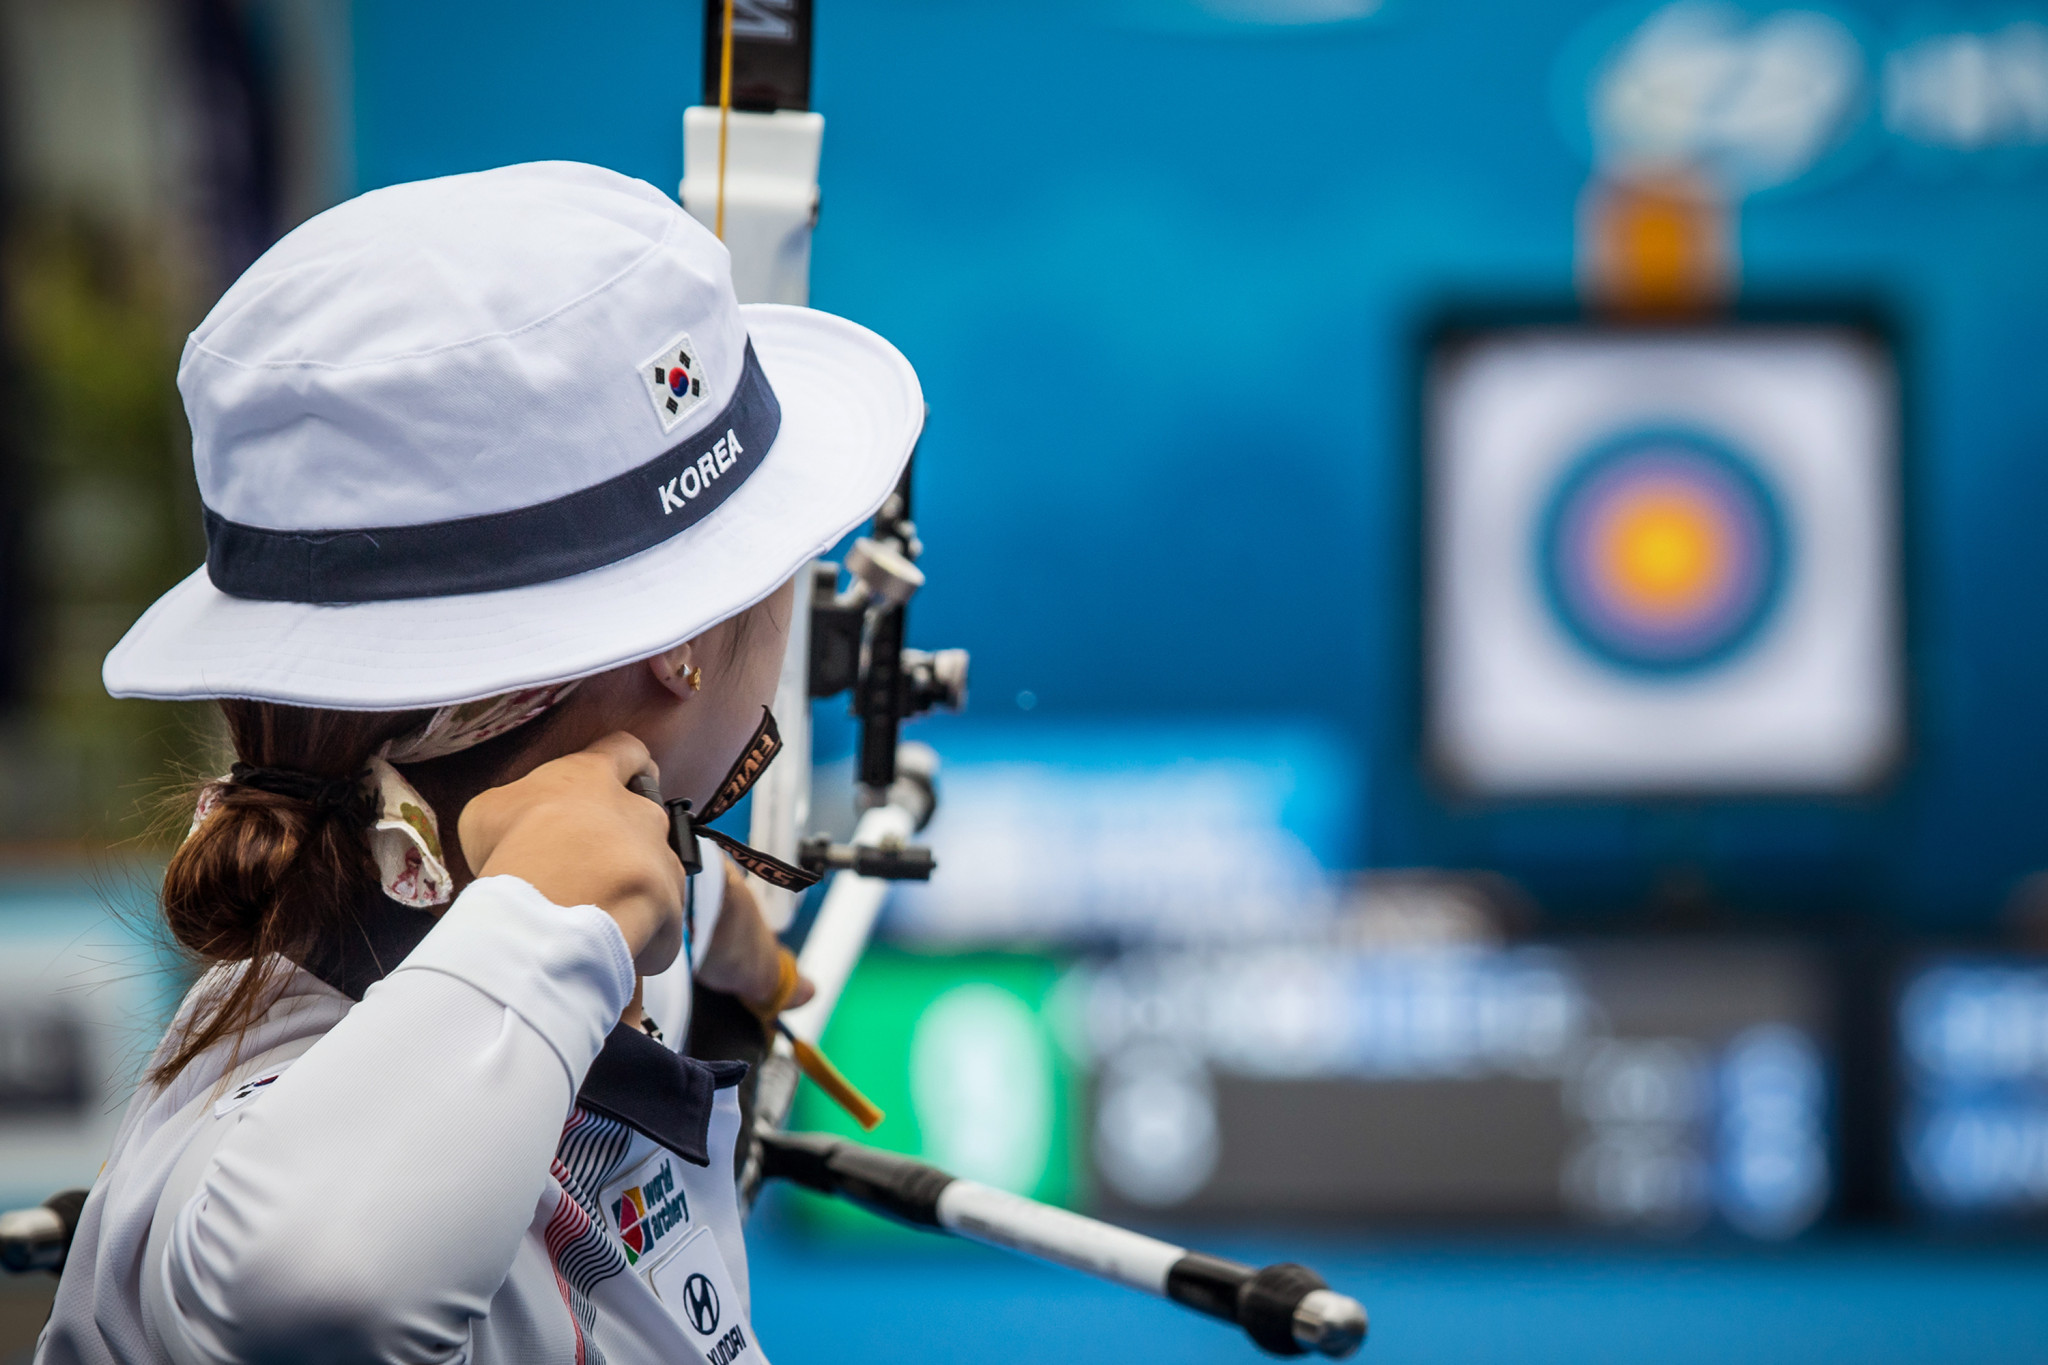 Polish Archery Federation suspended for governance failures